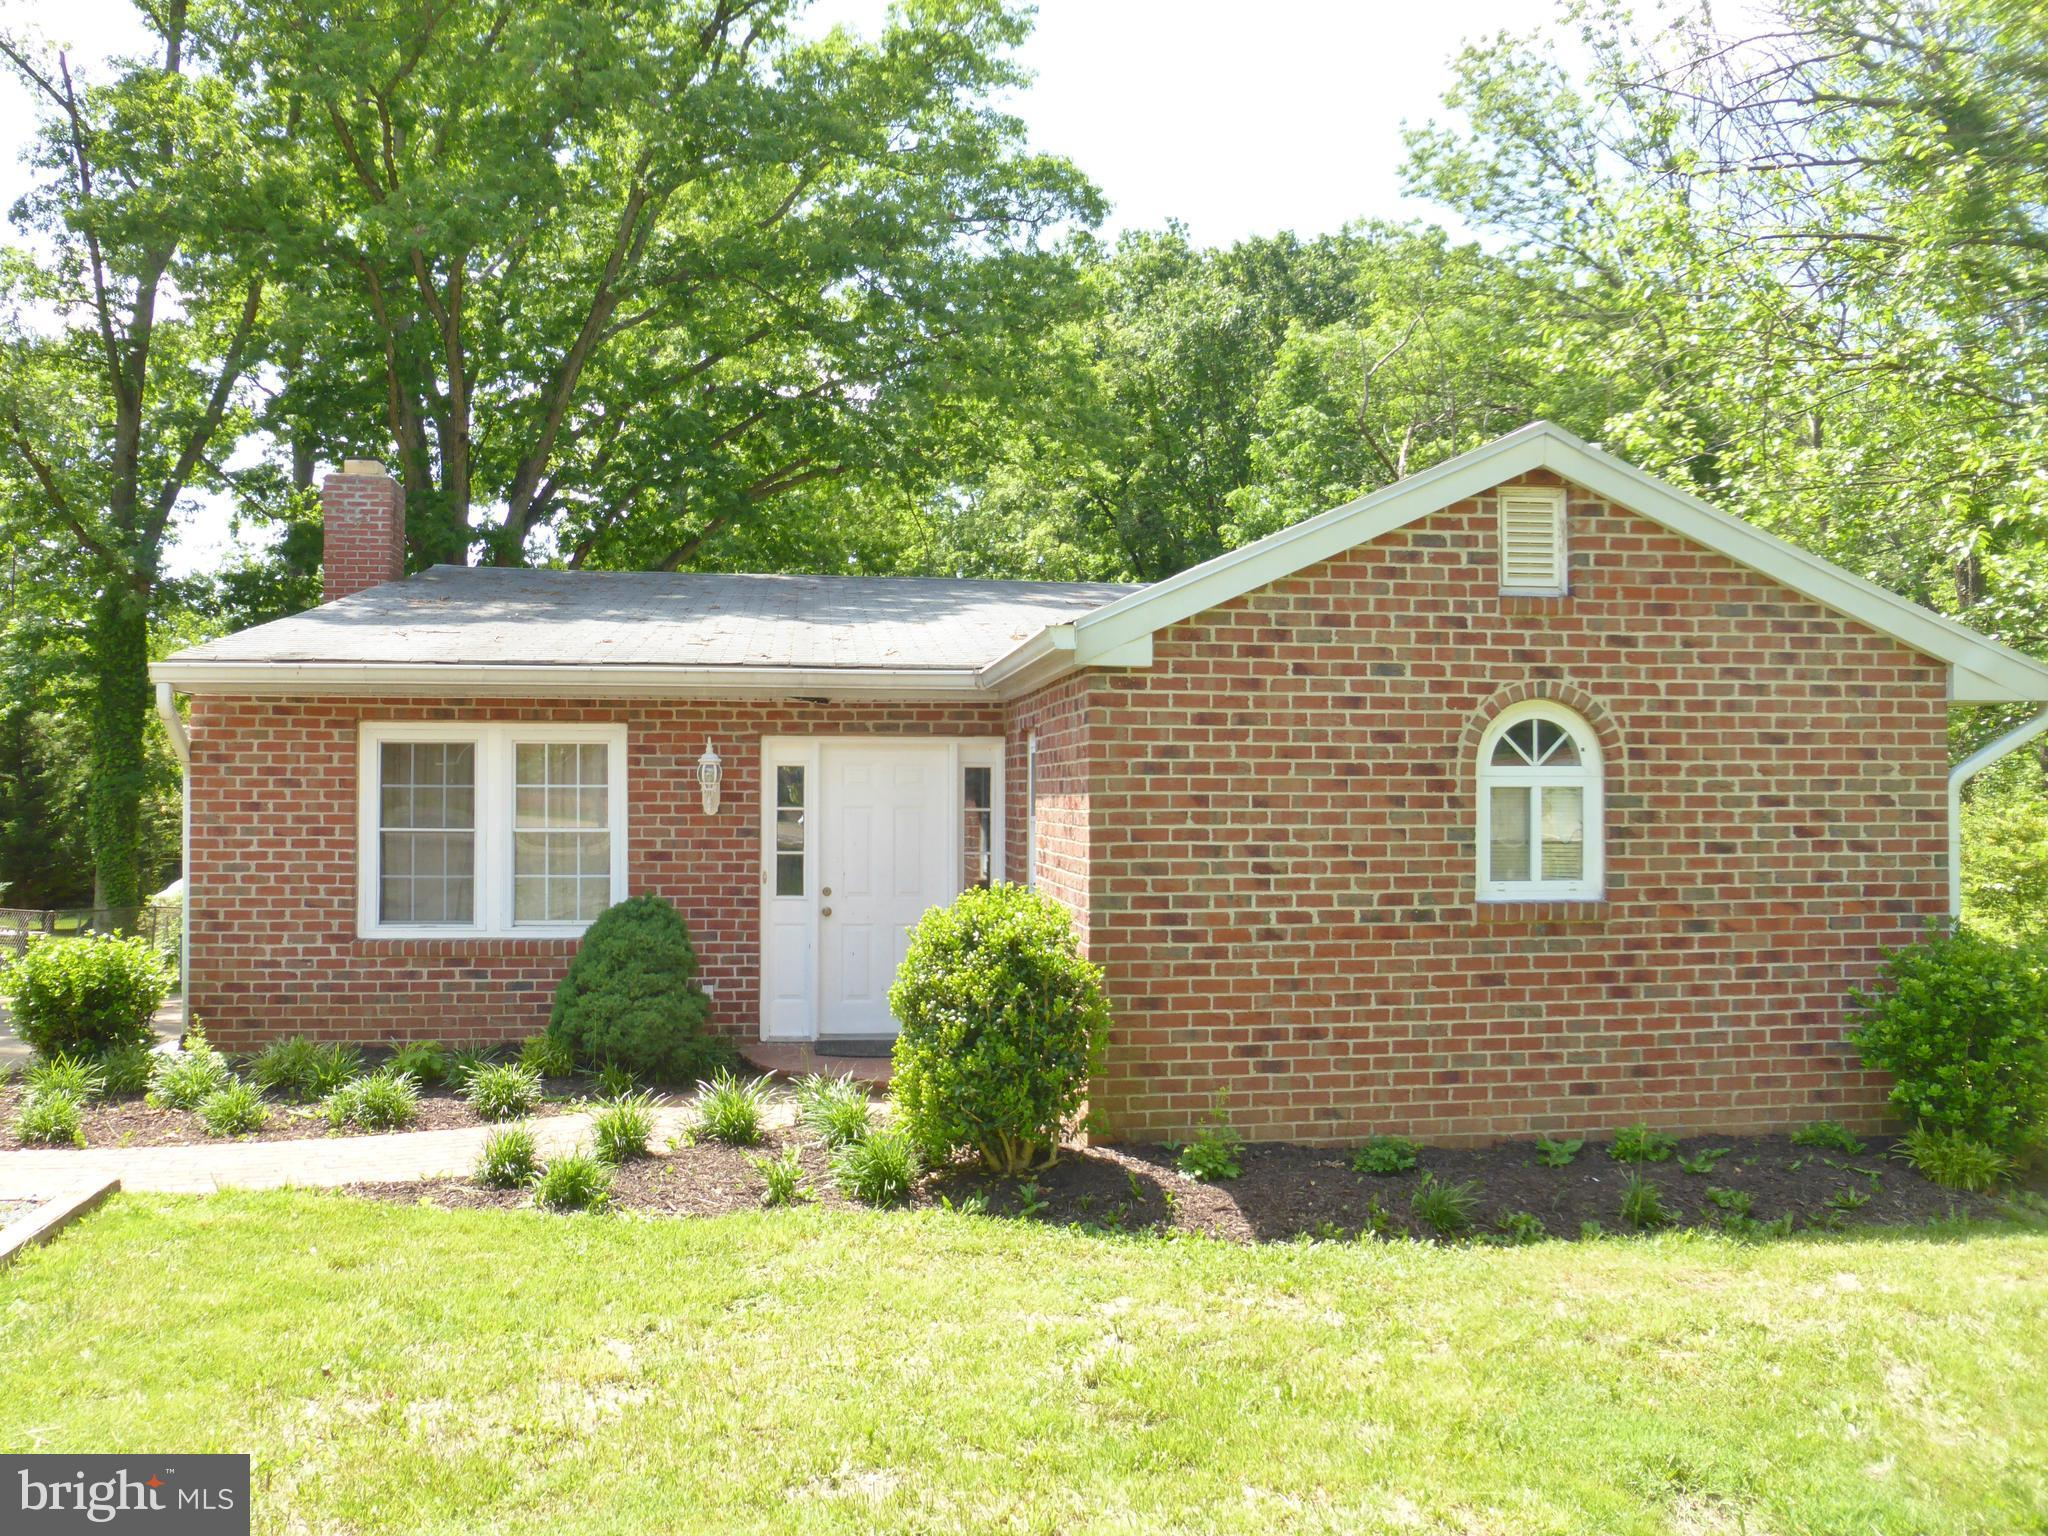 4 BR / 3 BA 2 Level Rambler on Oversized Lot! Some updates, could use some TLC. Some updates are in progress. Great inside the Beltway location! So convenient to 395/495, Mark Center, Pentagon, DC!